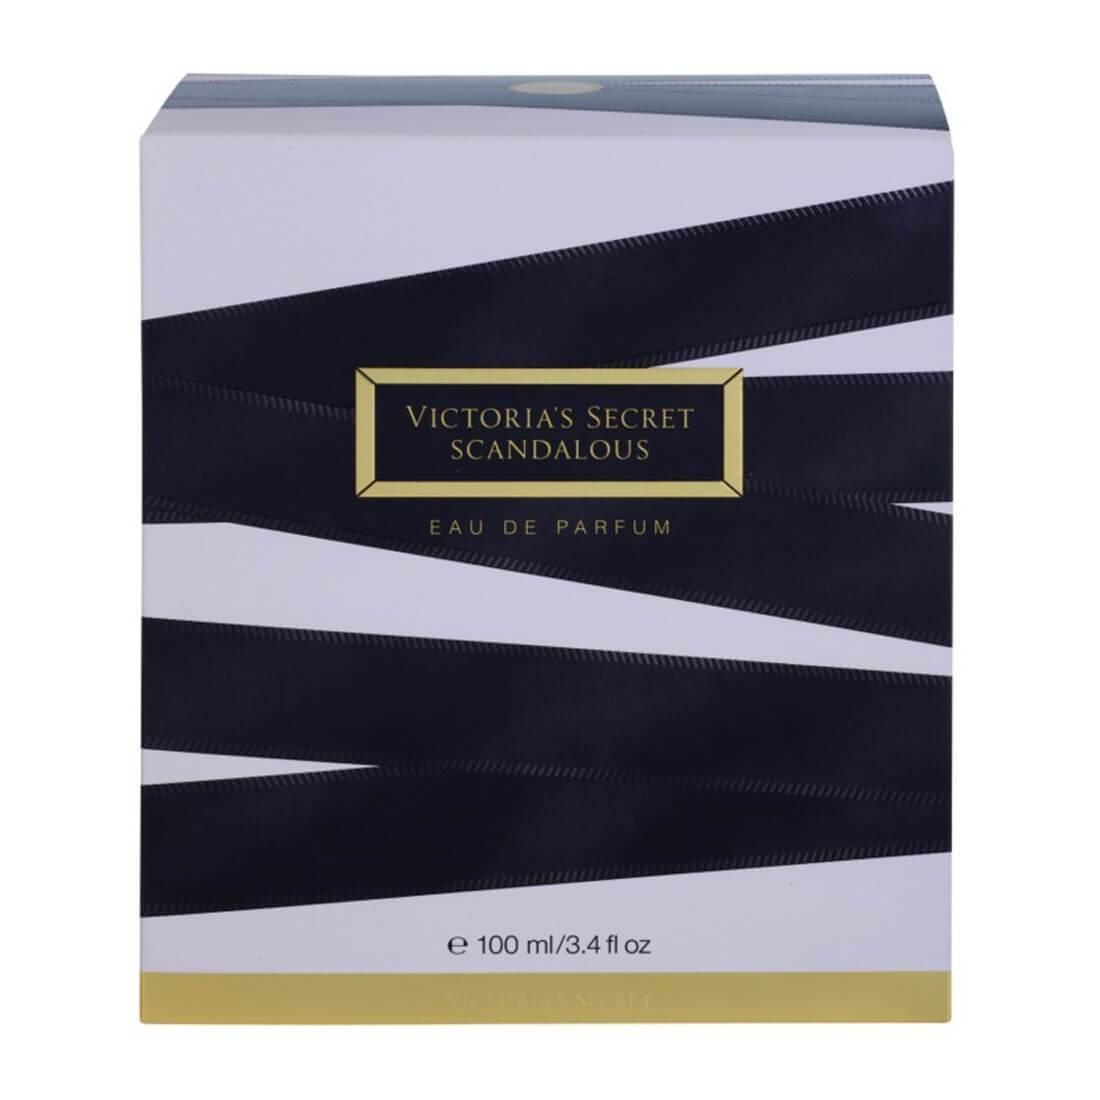 Victoria Secret Scandalous Purfume - 100ml